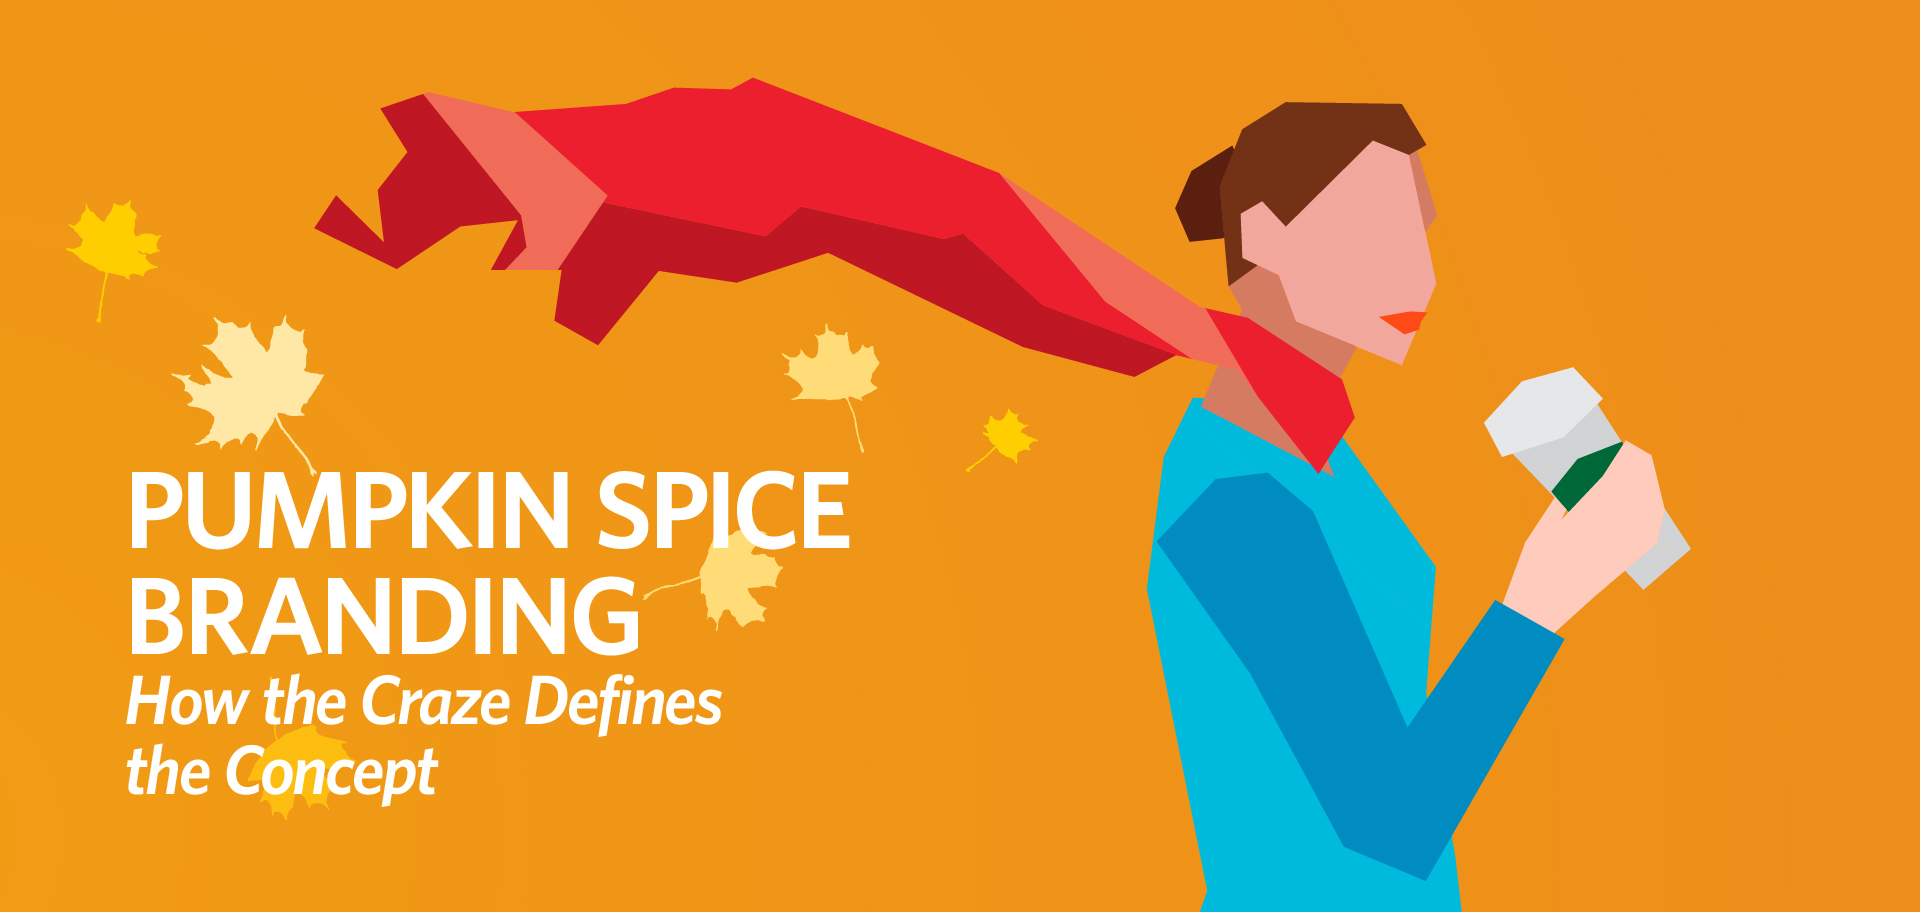 Pumpkin Spice Branding Kettle Fire Creative pumpkin spice Pumpkin Spice Branding: How the Craze Defines the Concept pumpkin spice fi